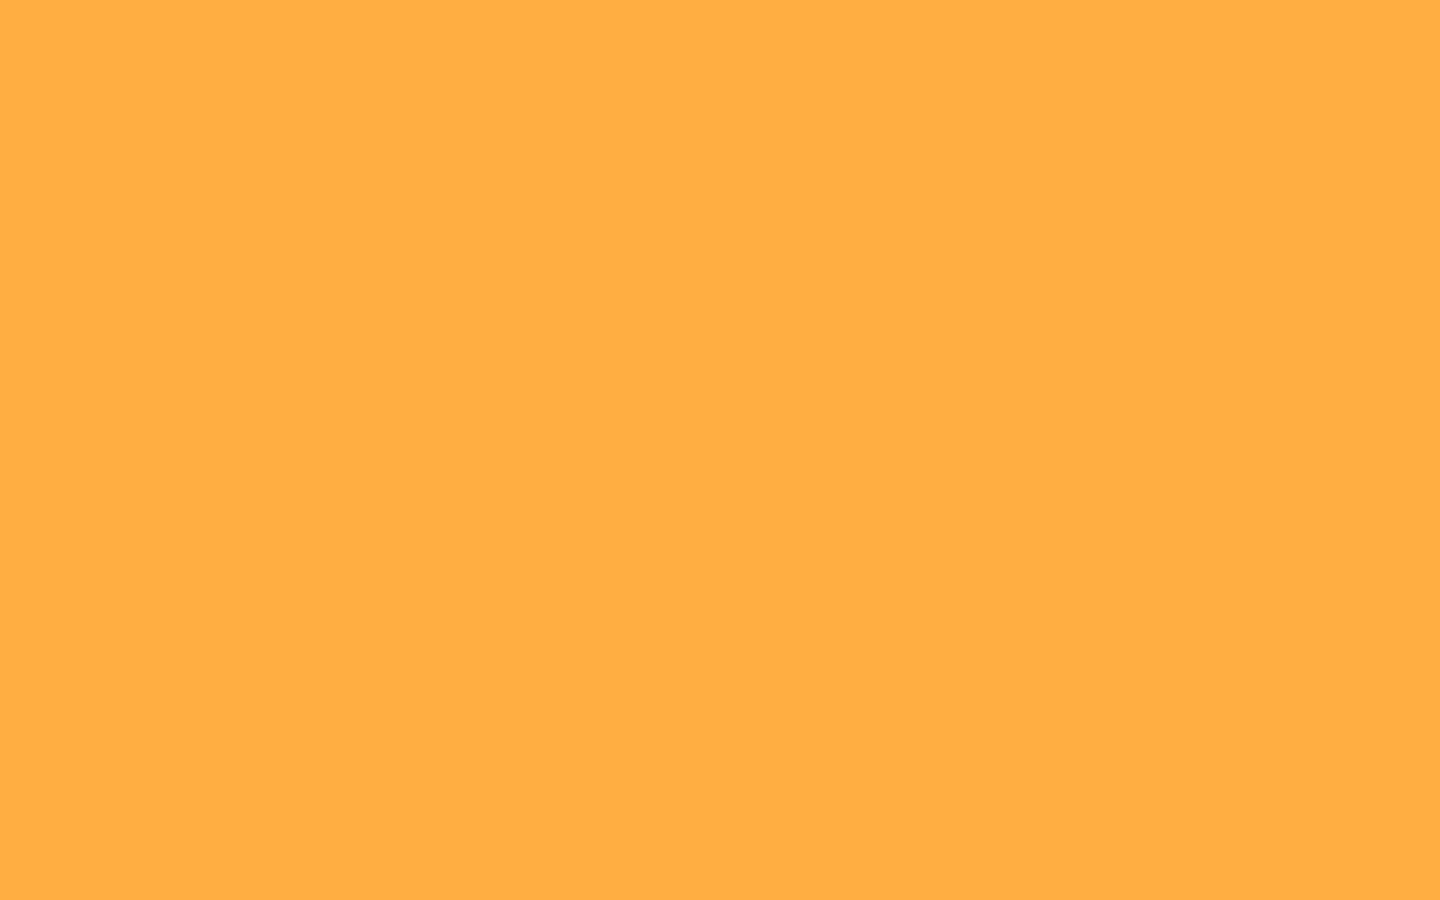 1440x900 Yellow Orange Solid Color Background